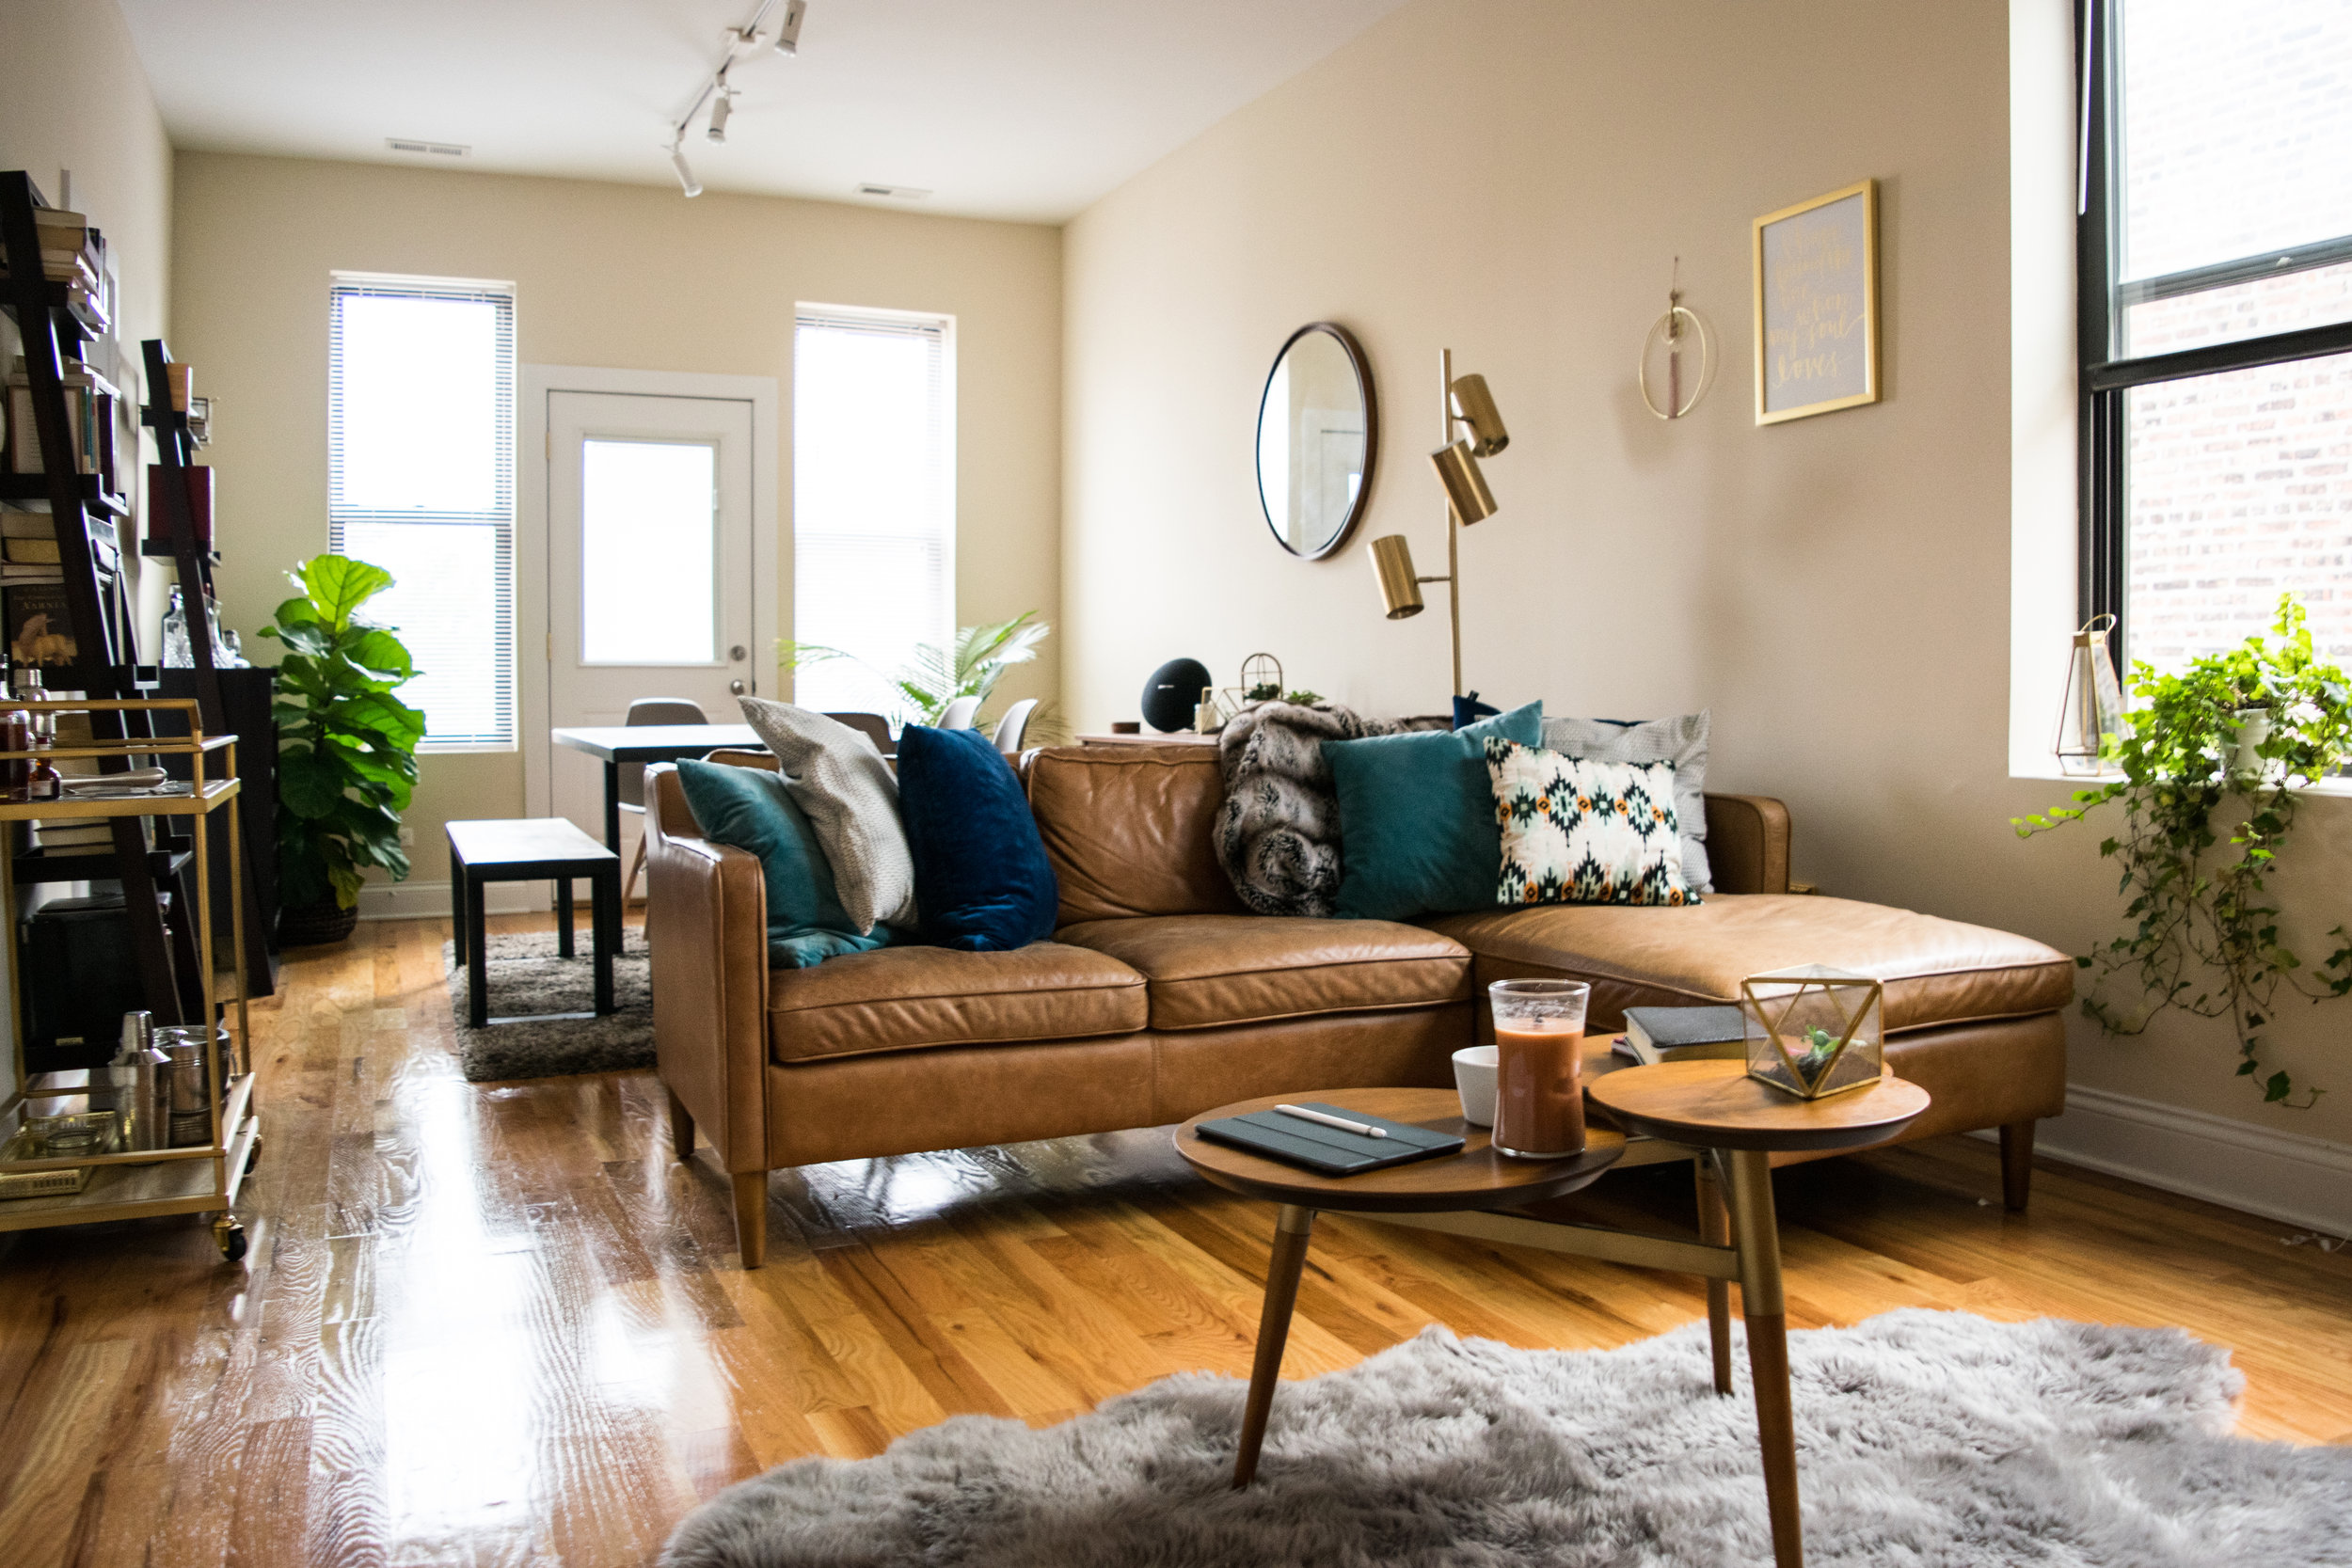 west elm living rooms images of with leather furniture how to style a mid century modern room westelm